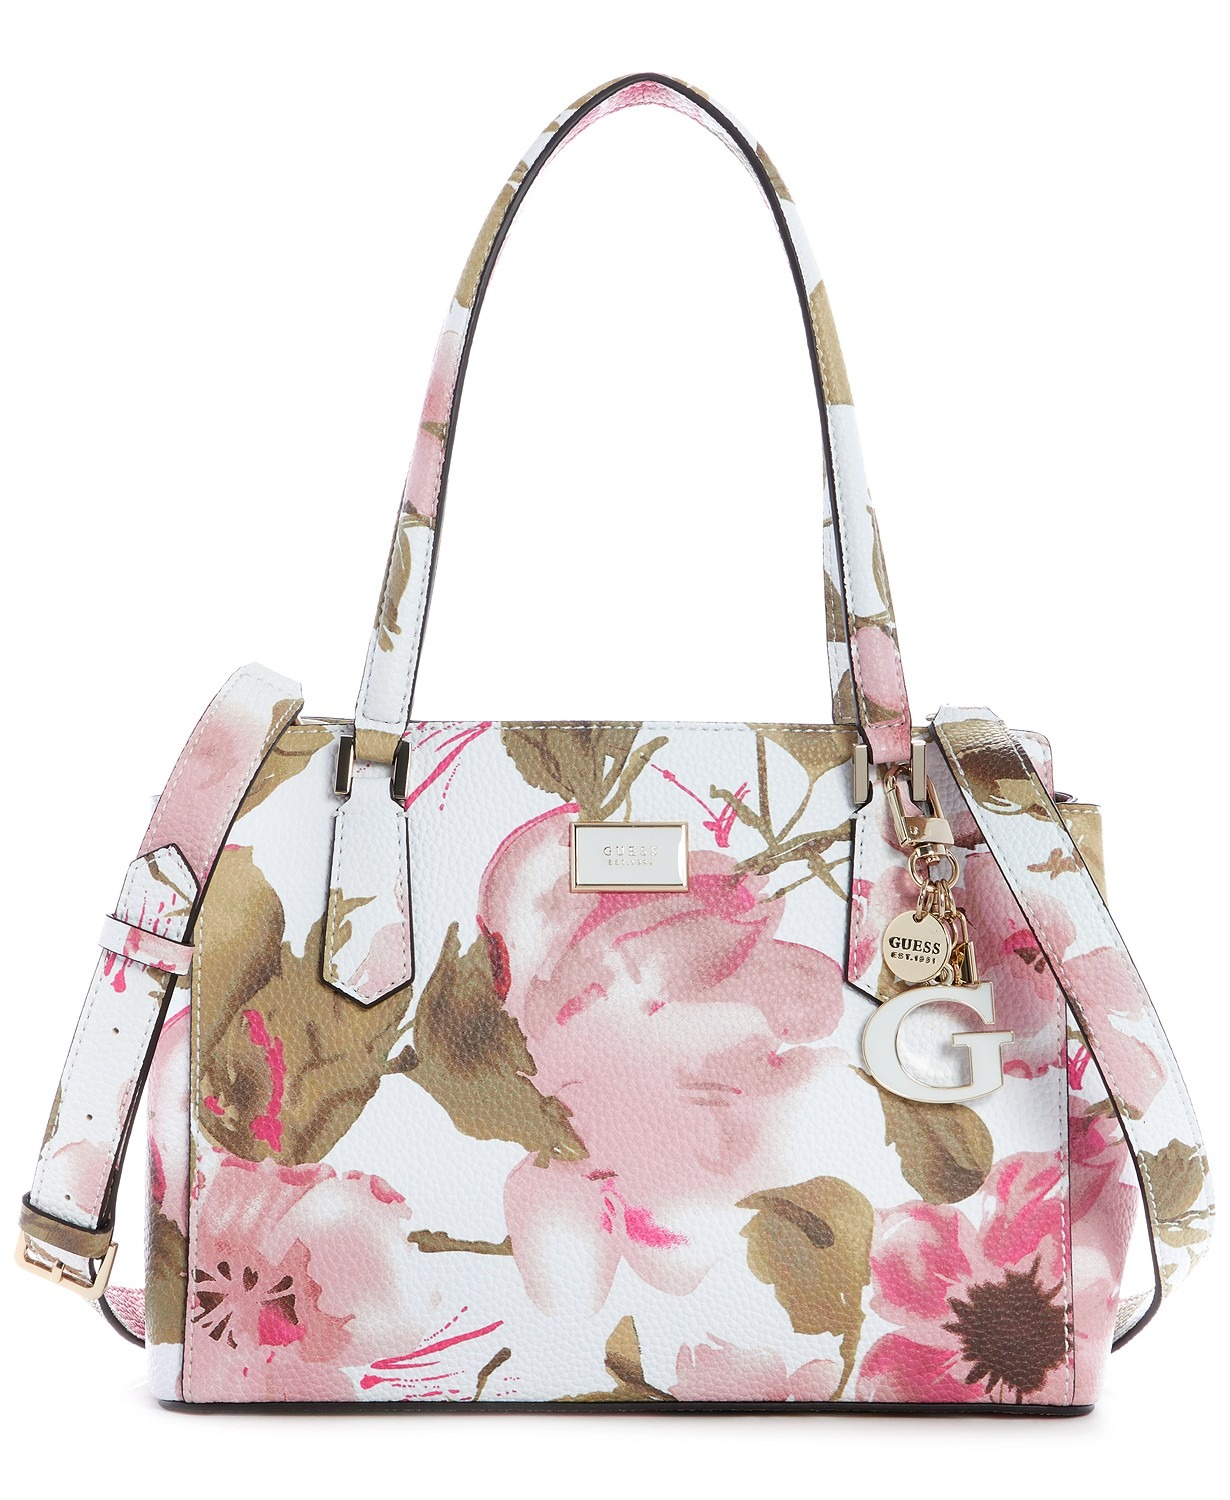 TÚI XÁCH GUESS ALESSI LUXURY SATCHEL, SPRING FLORAL / PALE GOLD